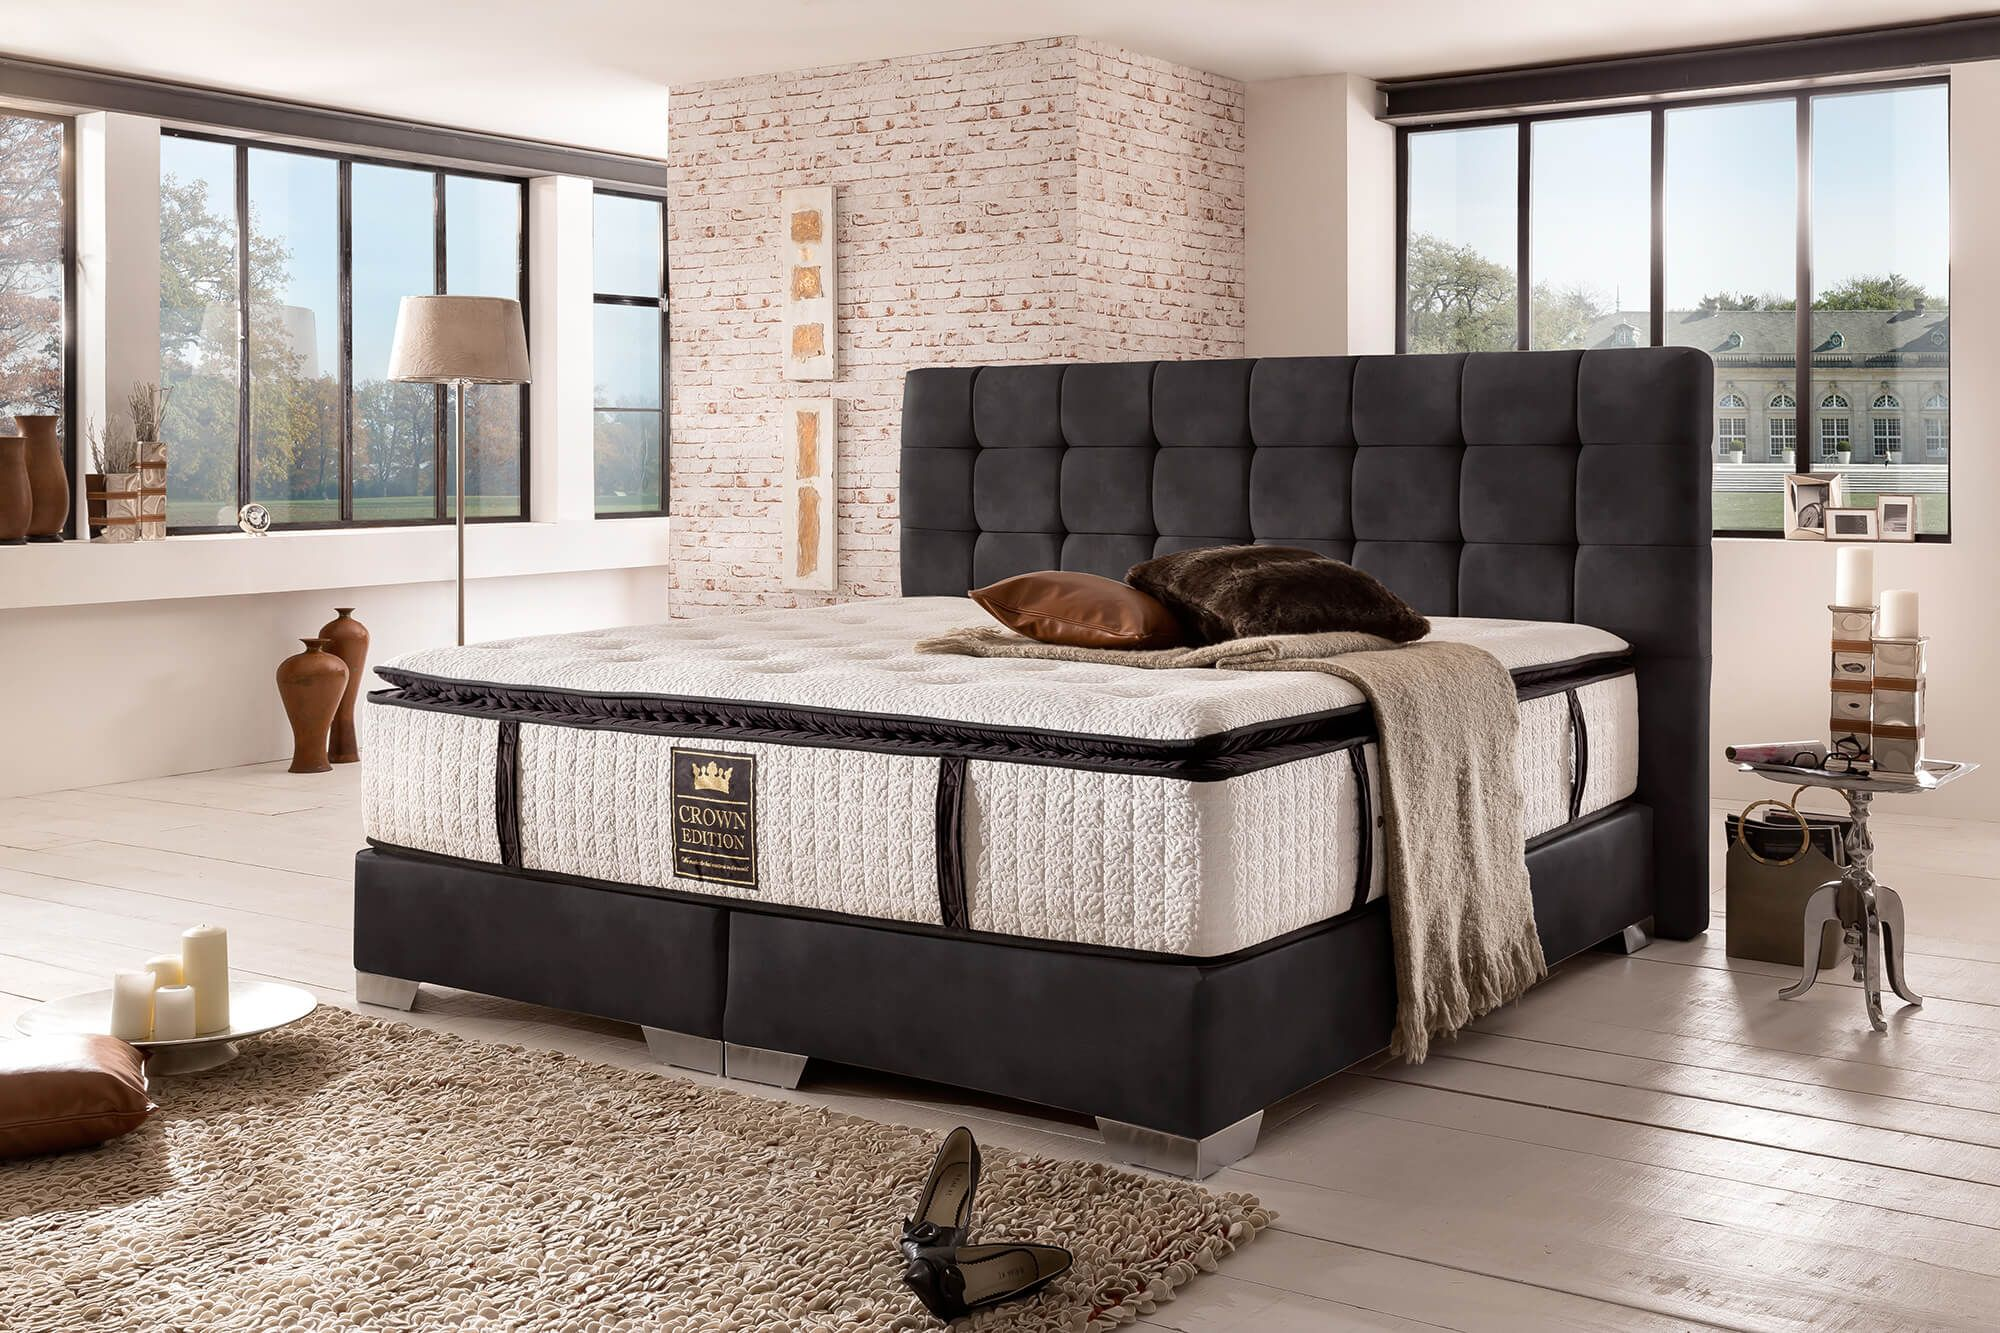 boxspringbett london deluxe schwarz boxspringbetten in 2019 schlafzimmer bett und. Black Bedroom Furniture Sets. Home Design Ideas